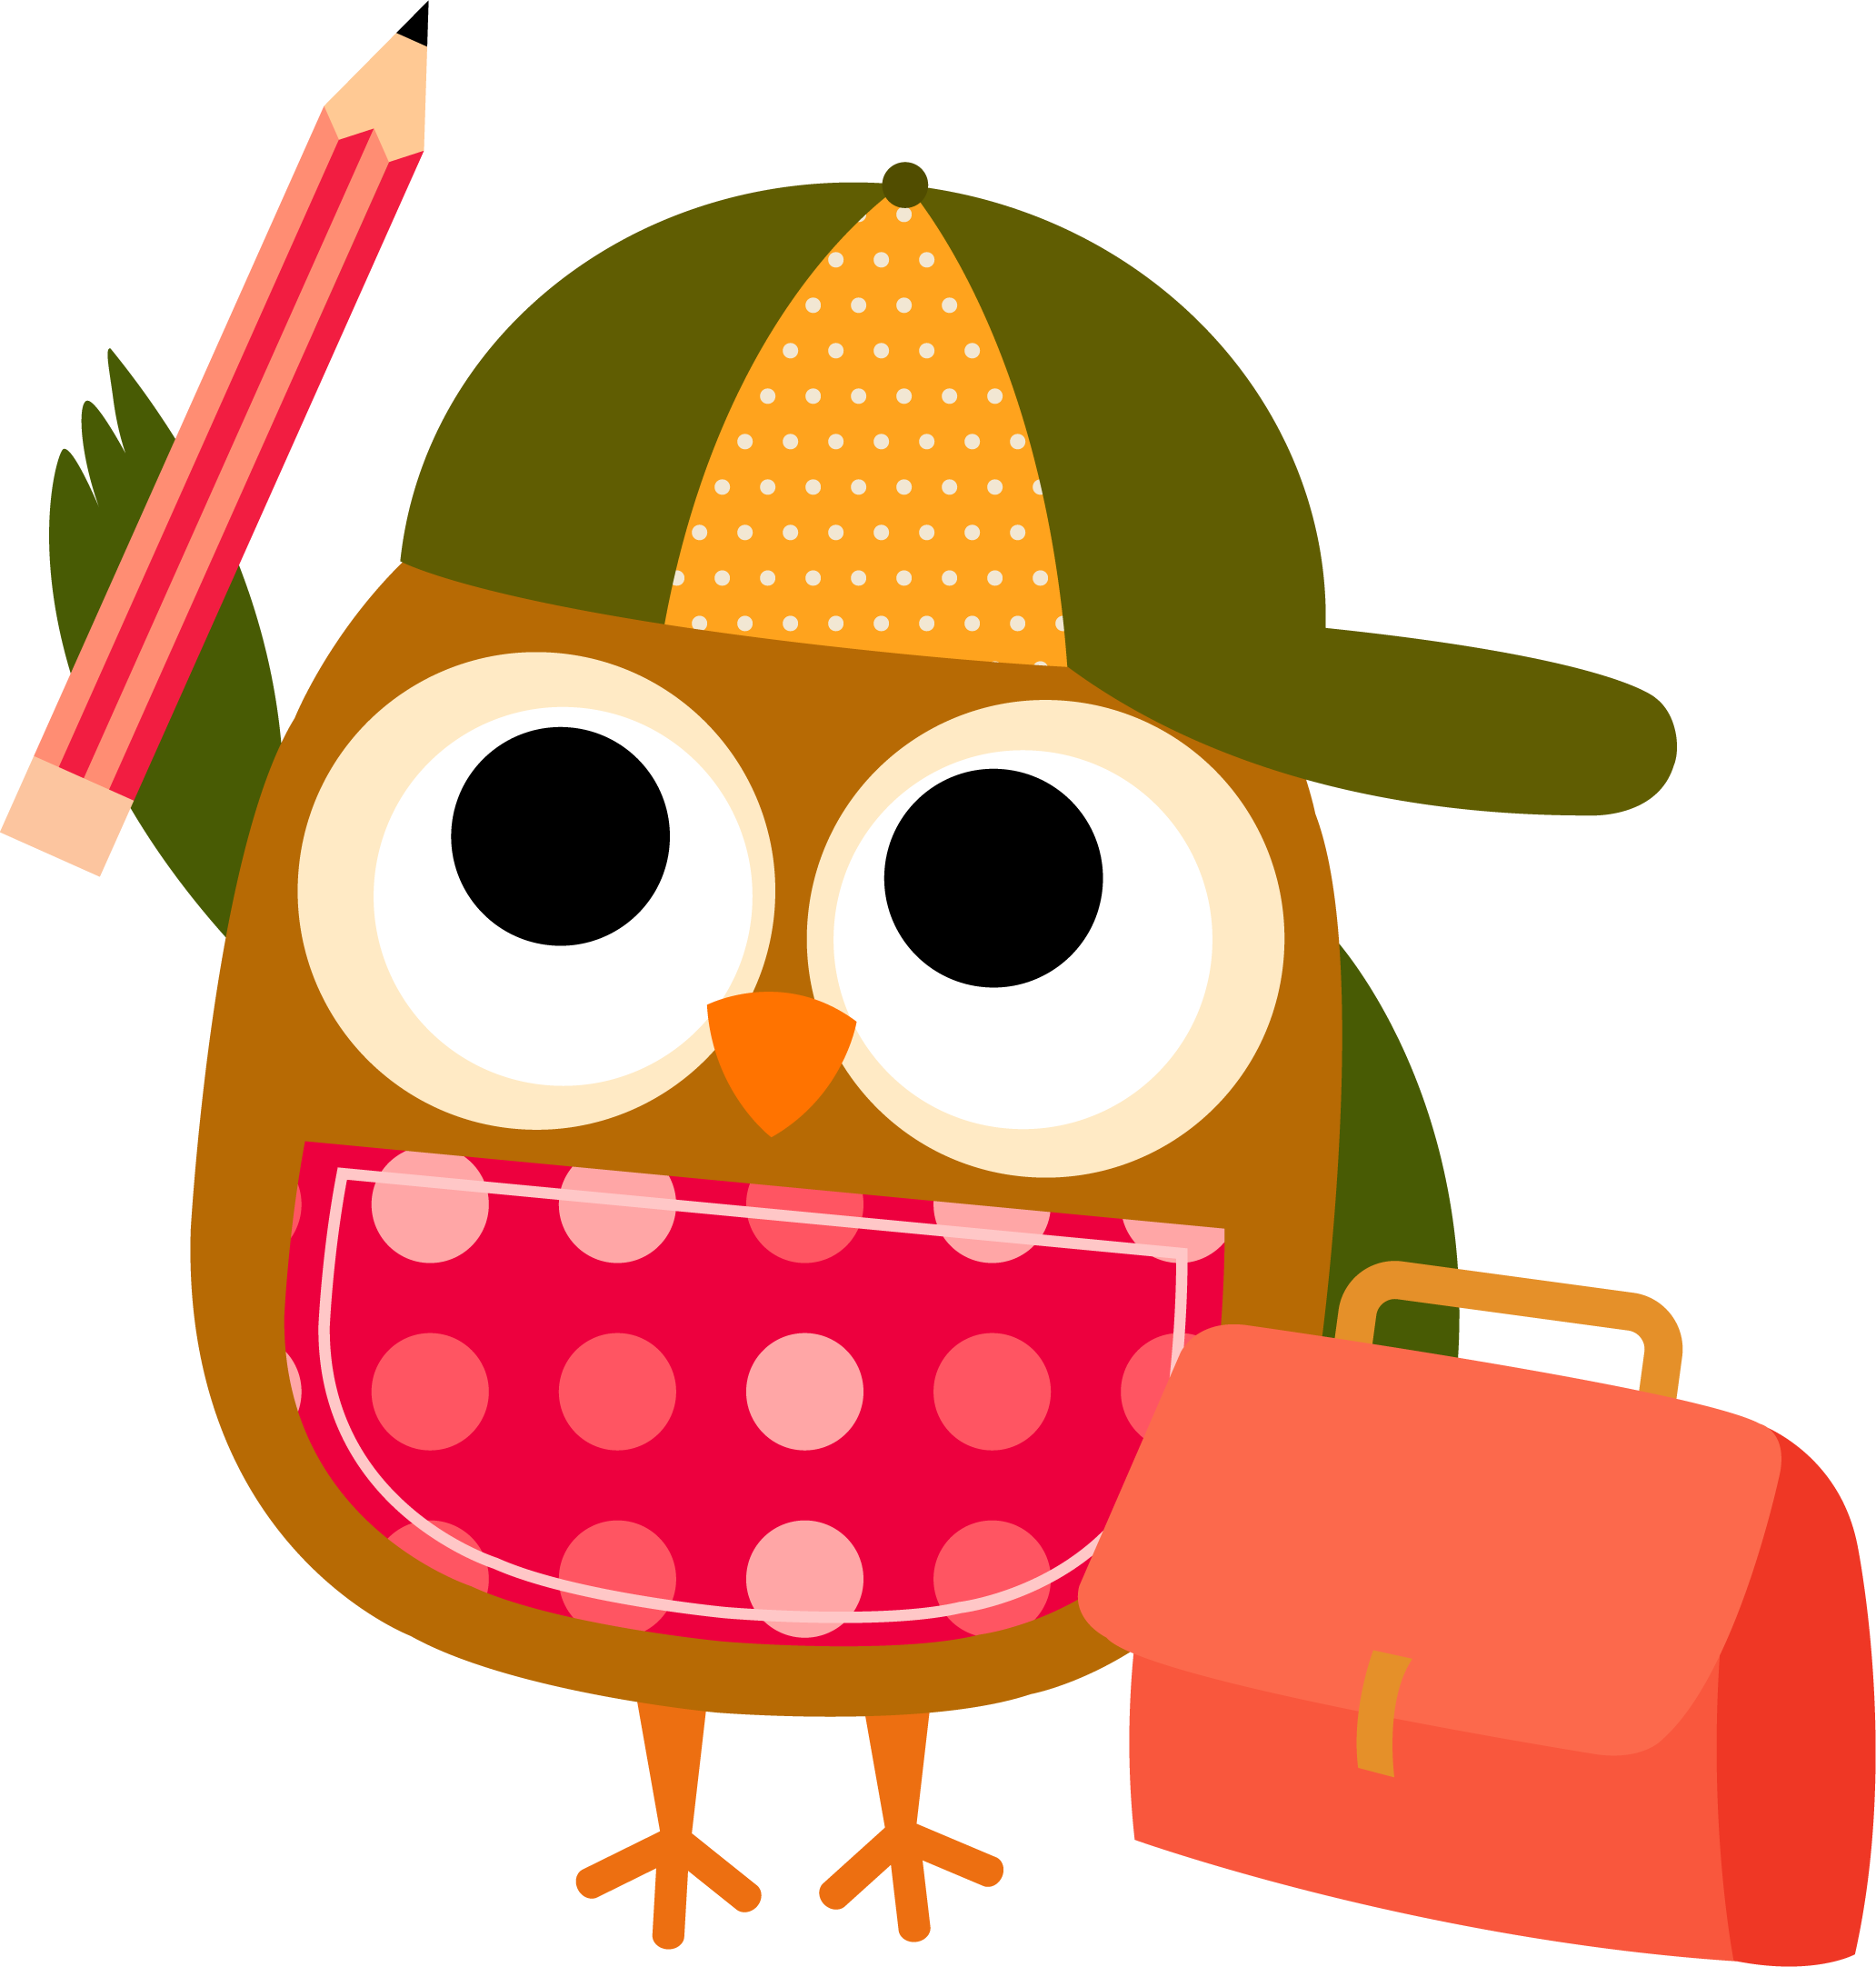 Owl clipart school library January 2014 | Date Archive | The W.I.S.E. Owl- Where Instruction ... library